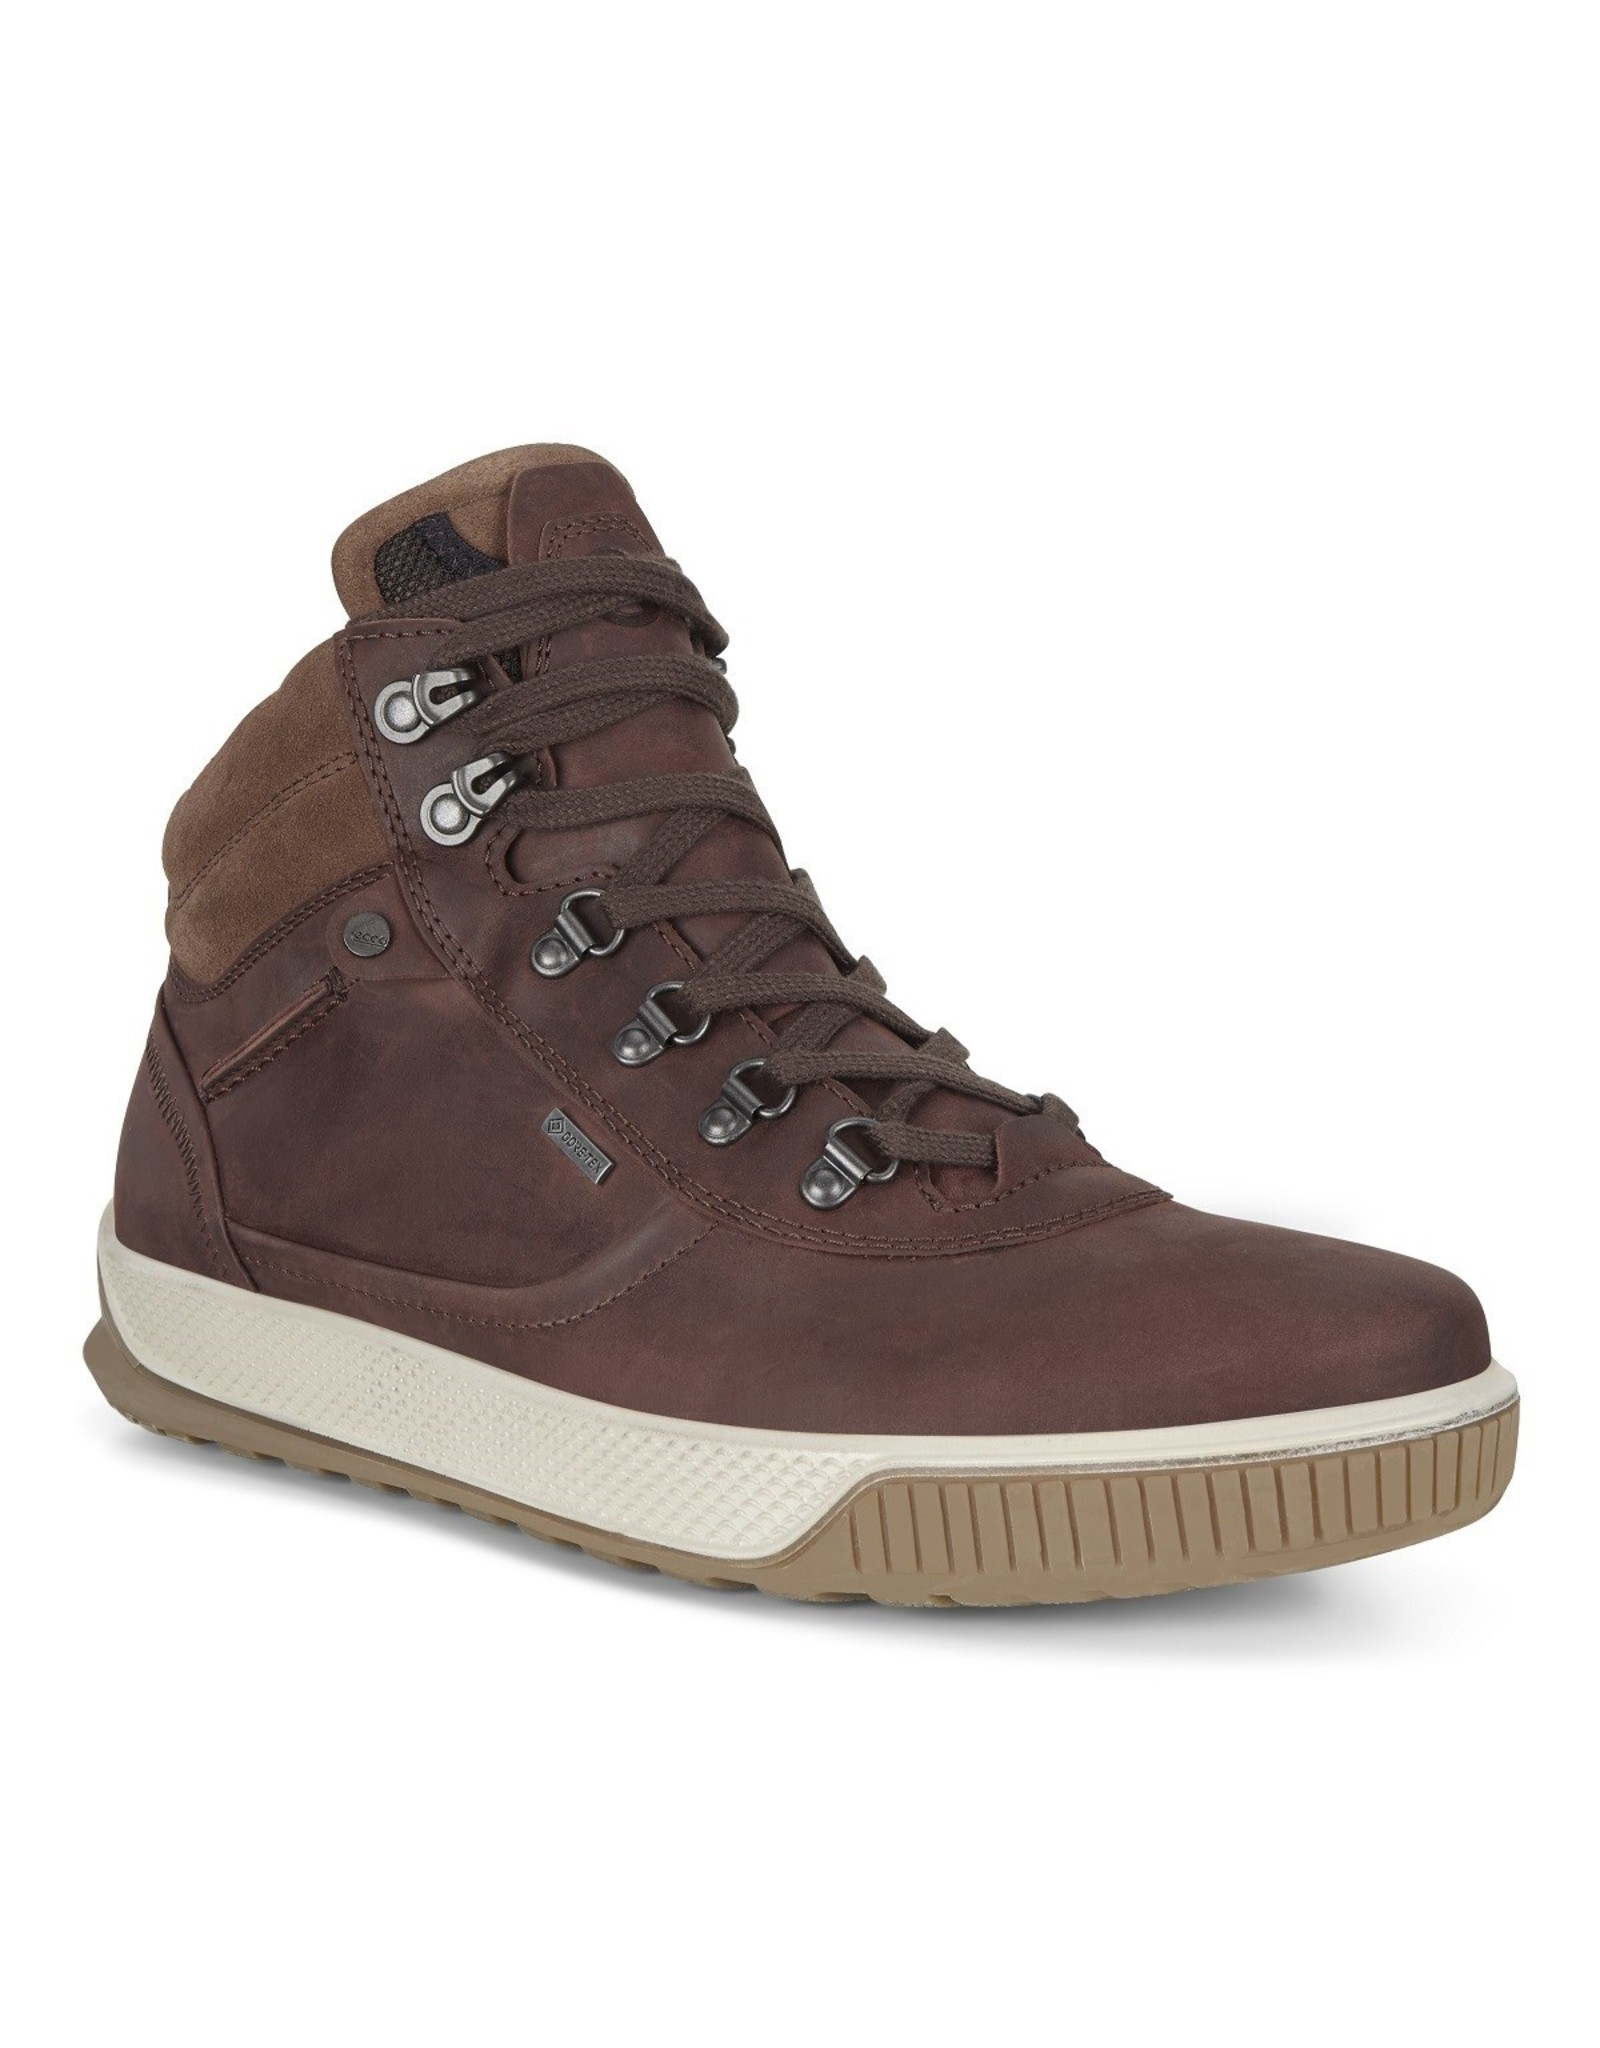 ECCO MEN'S BYWAY TRED GORE-TEX URBAN BOOT-CHOCOLAT/COCOA BROWN OIL NUBUCK